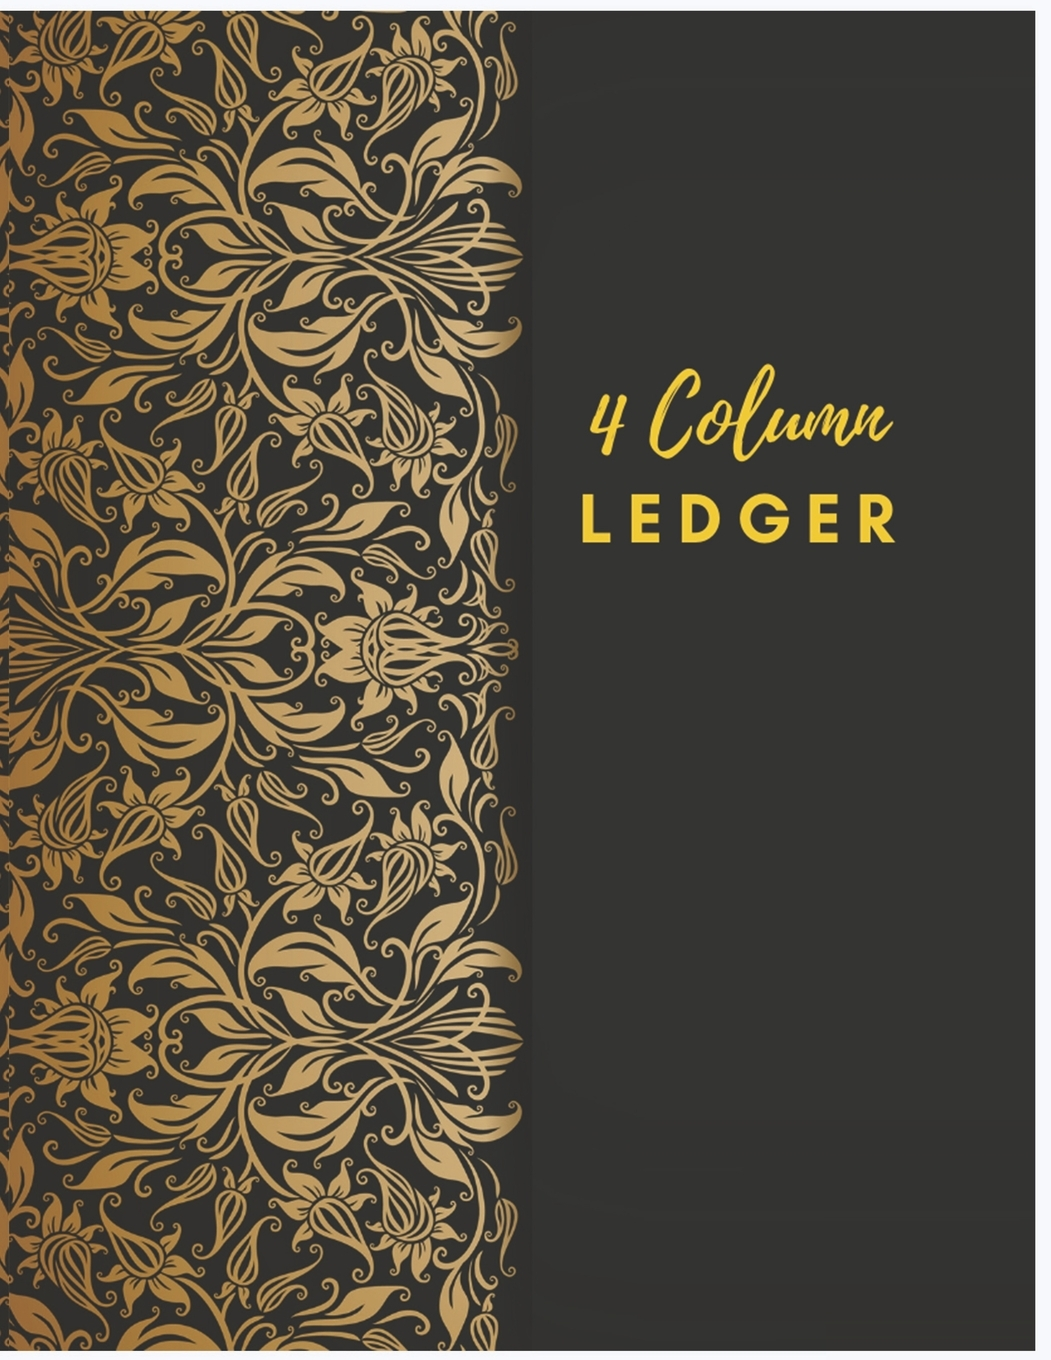 General Expense Accounting Ledger Notebook 4 Column